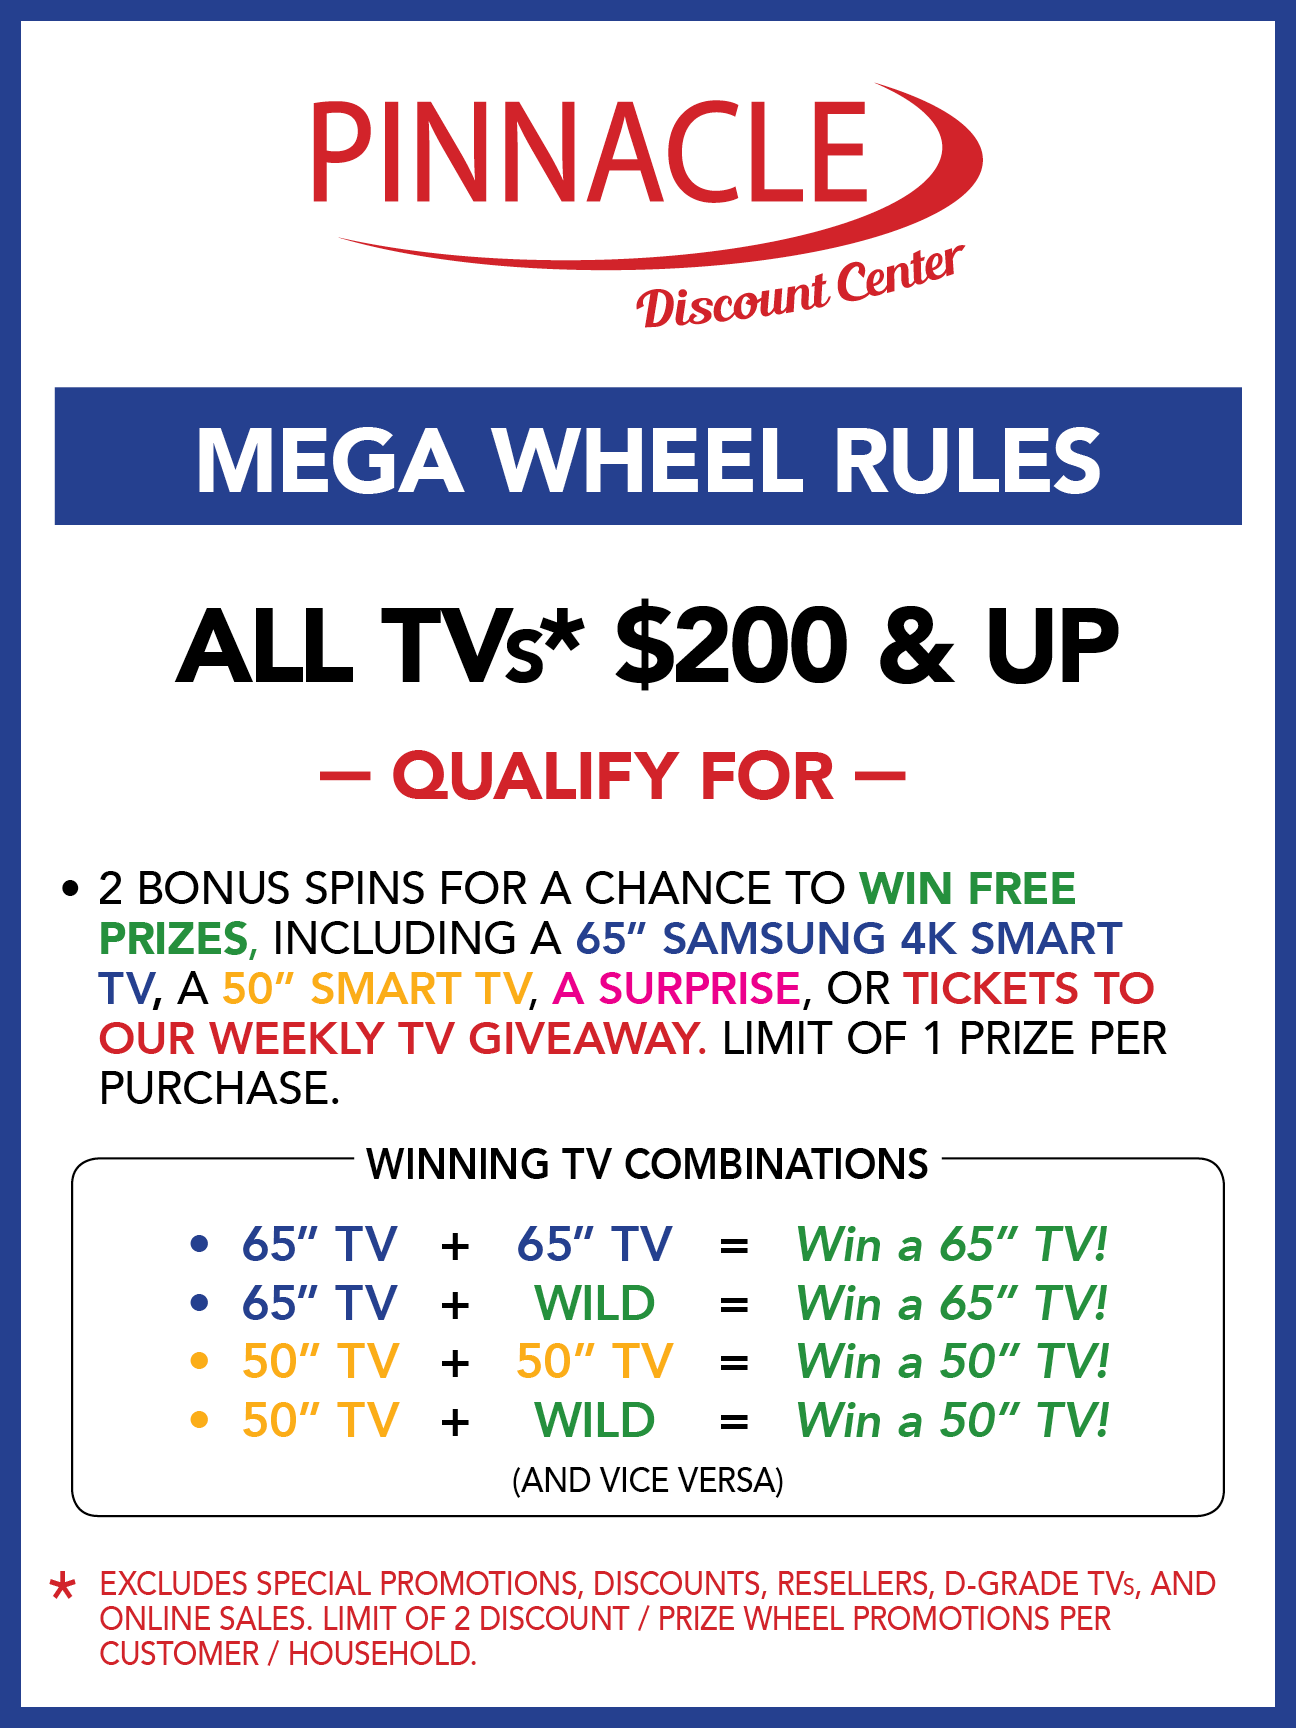 18x24-Wheel-Rules_NO-DISCOUNT2.png